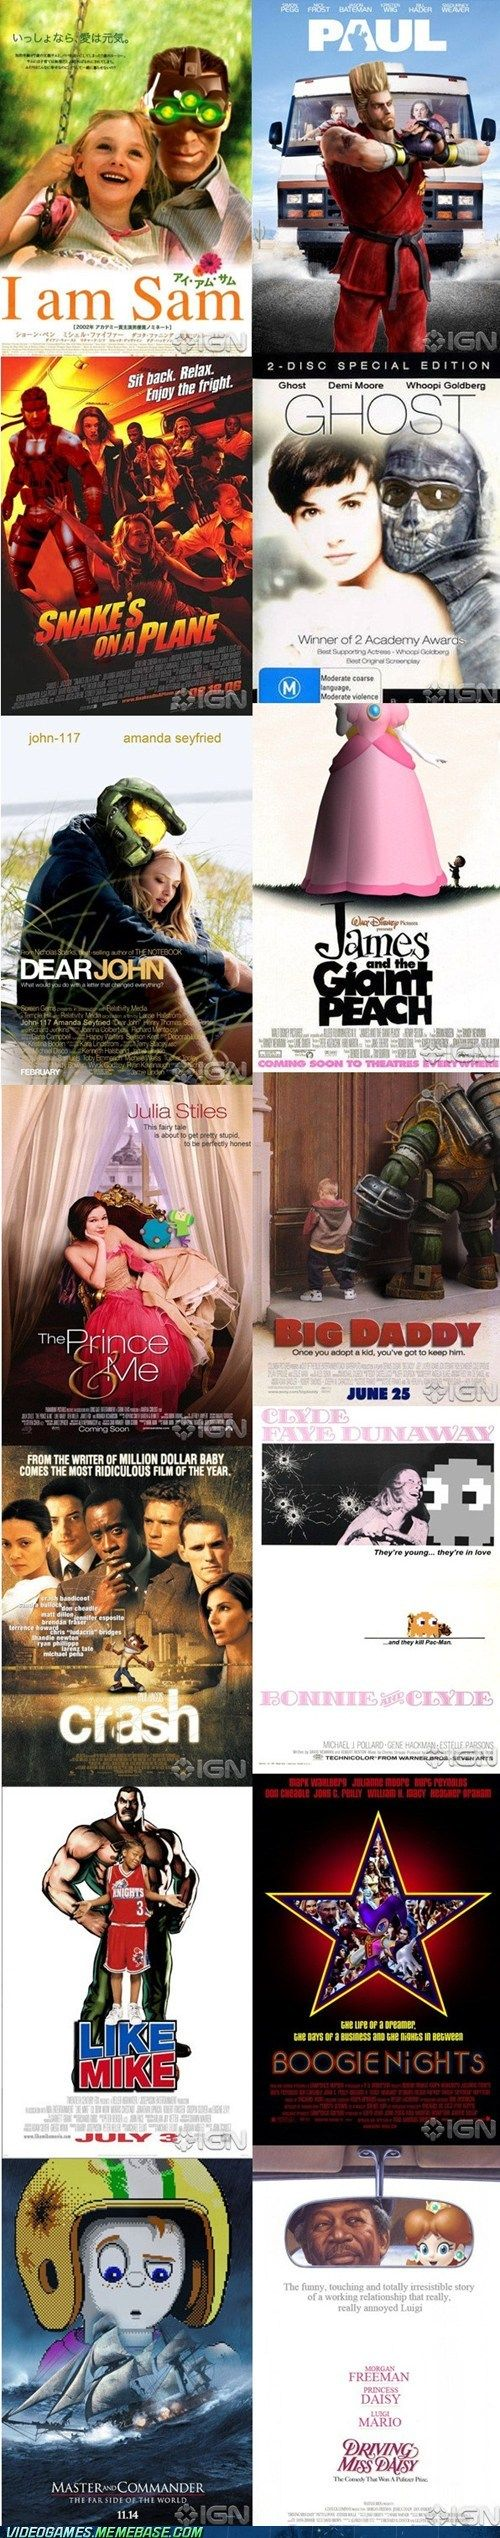 #Videogames x #MoviesPosters